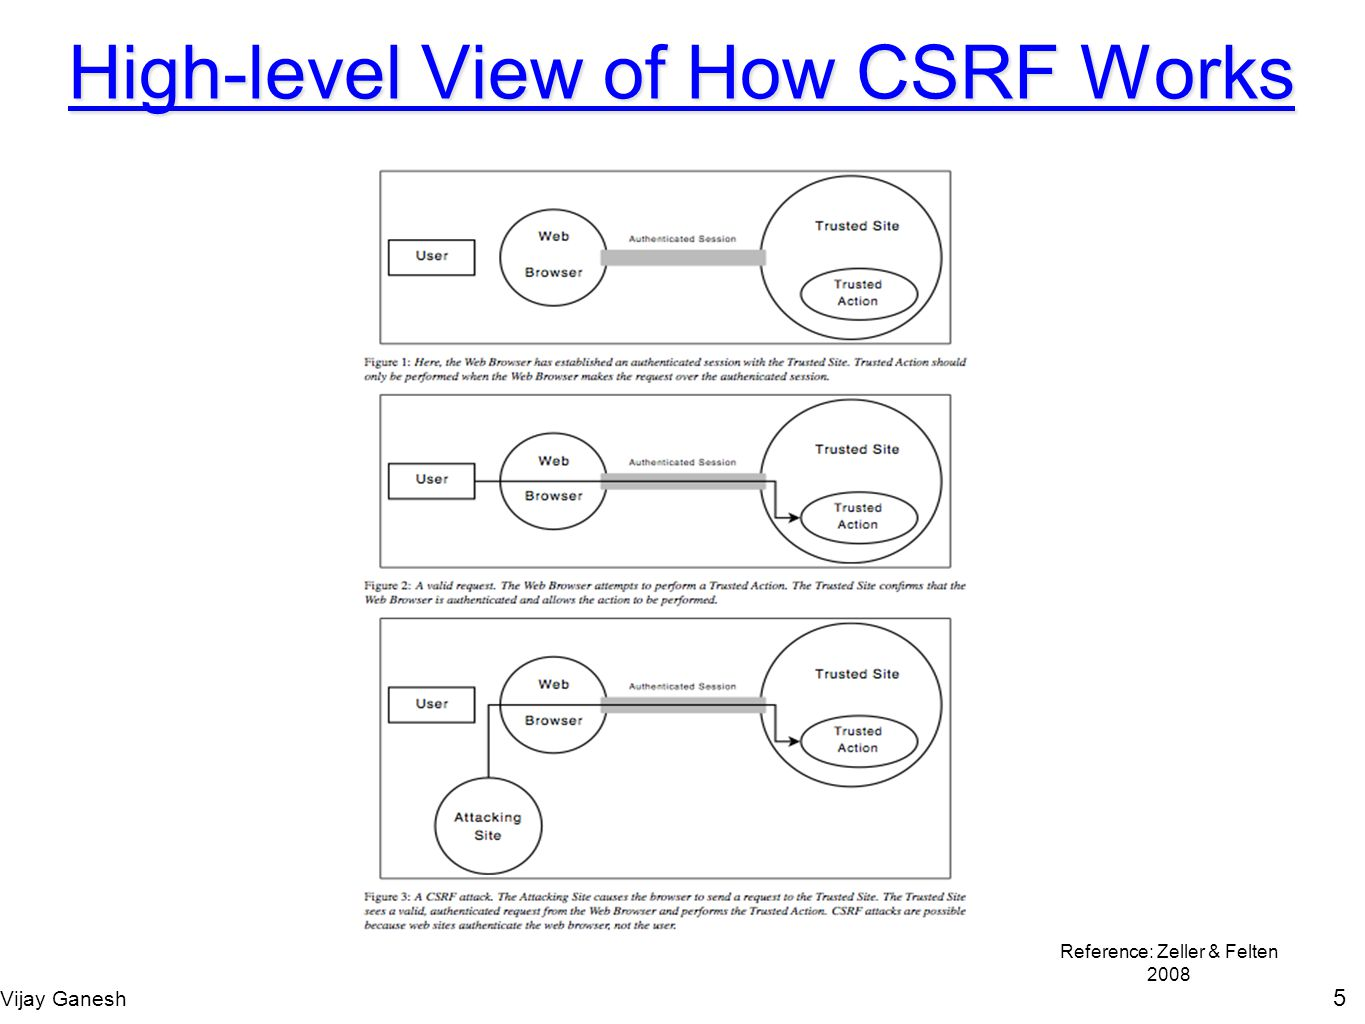 High-level View of How CSRF Works